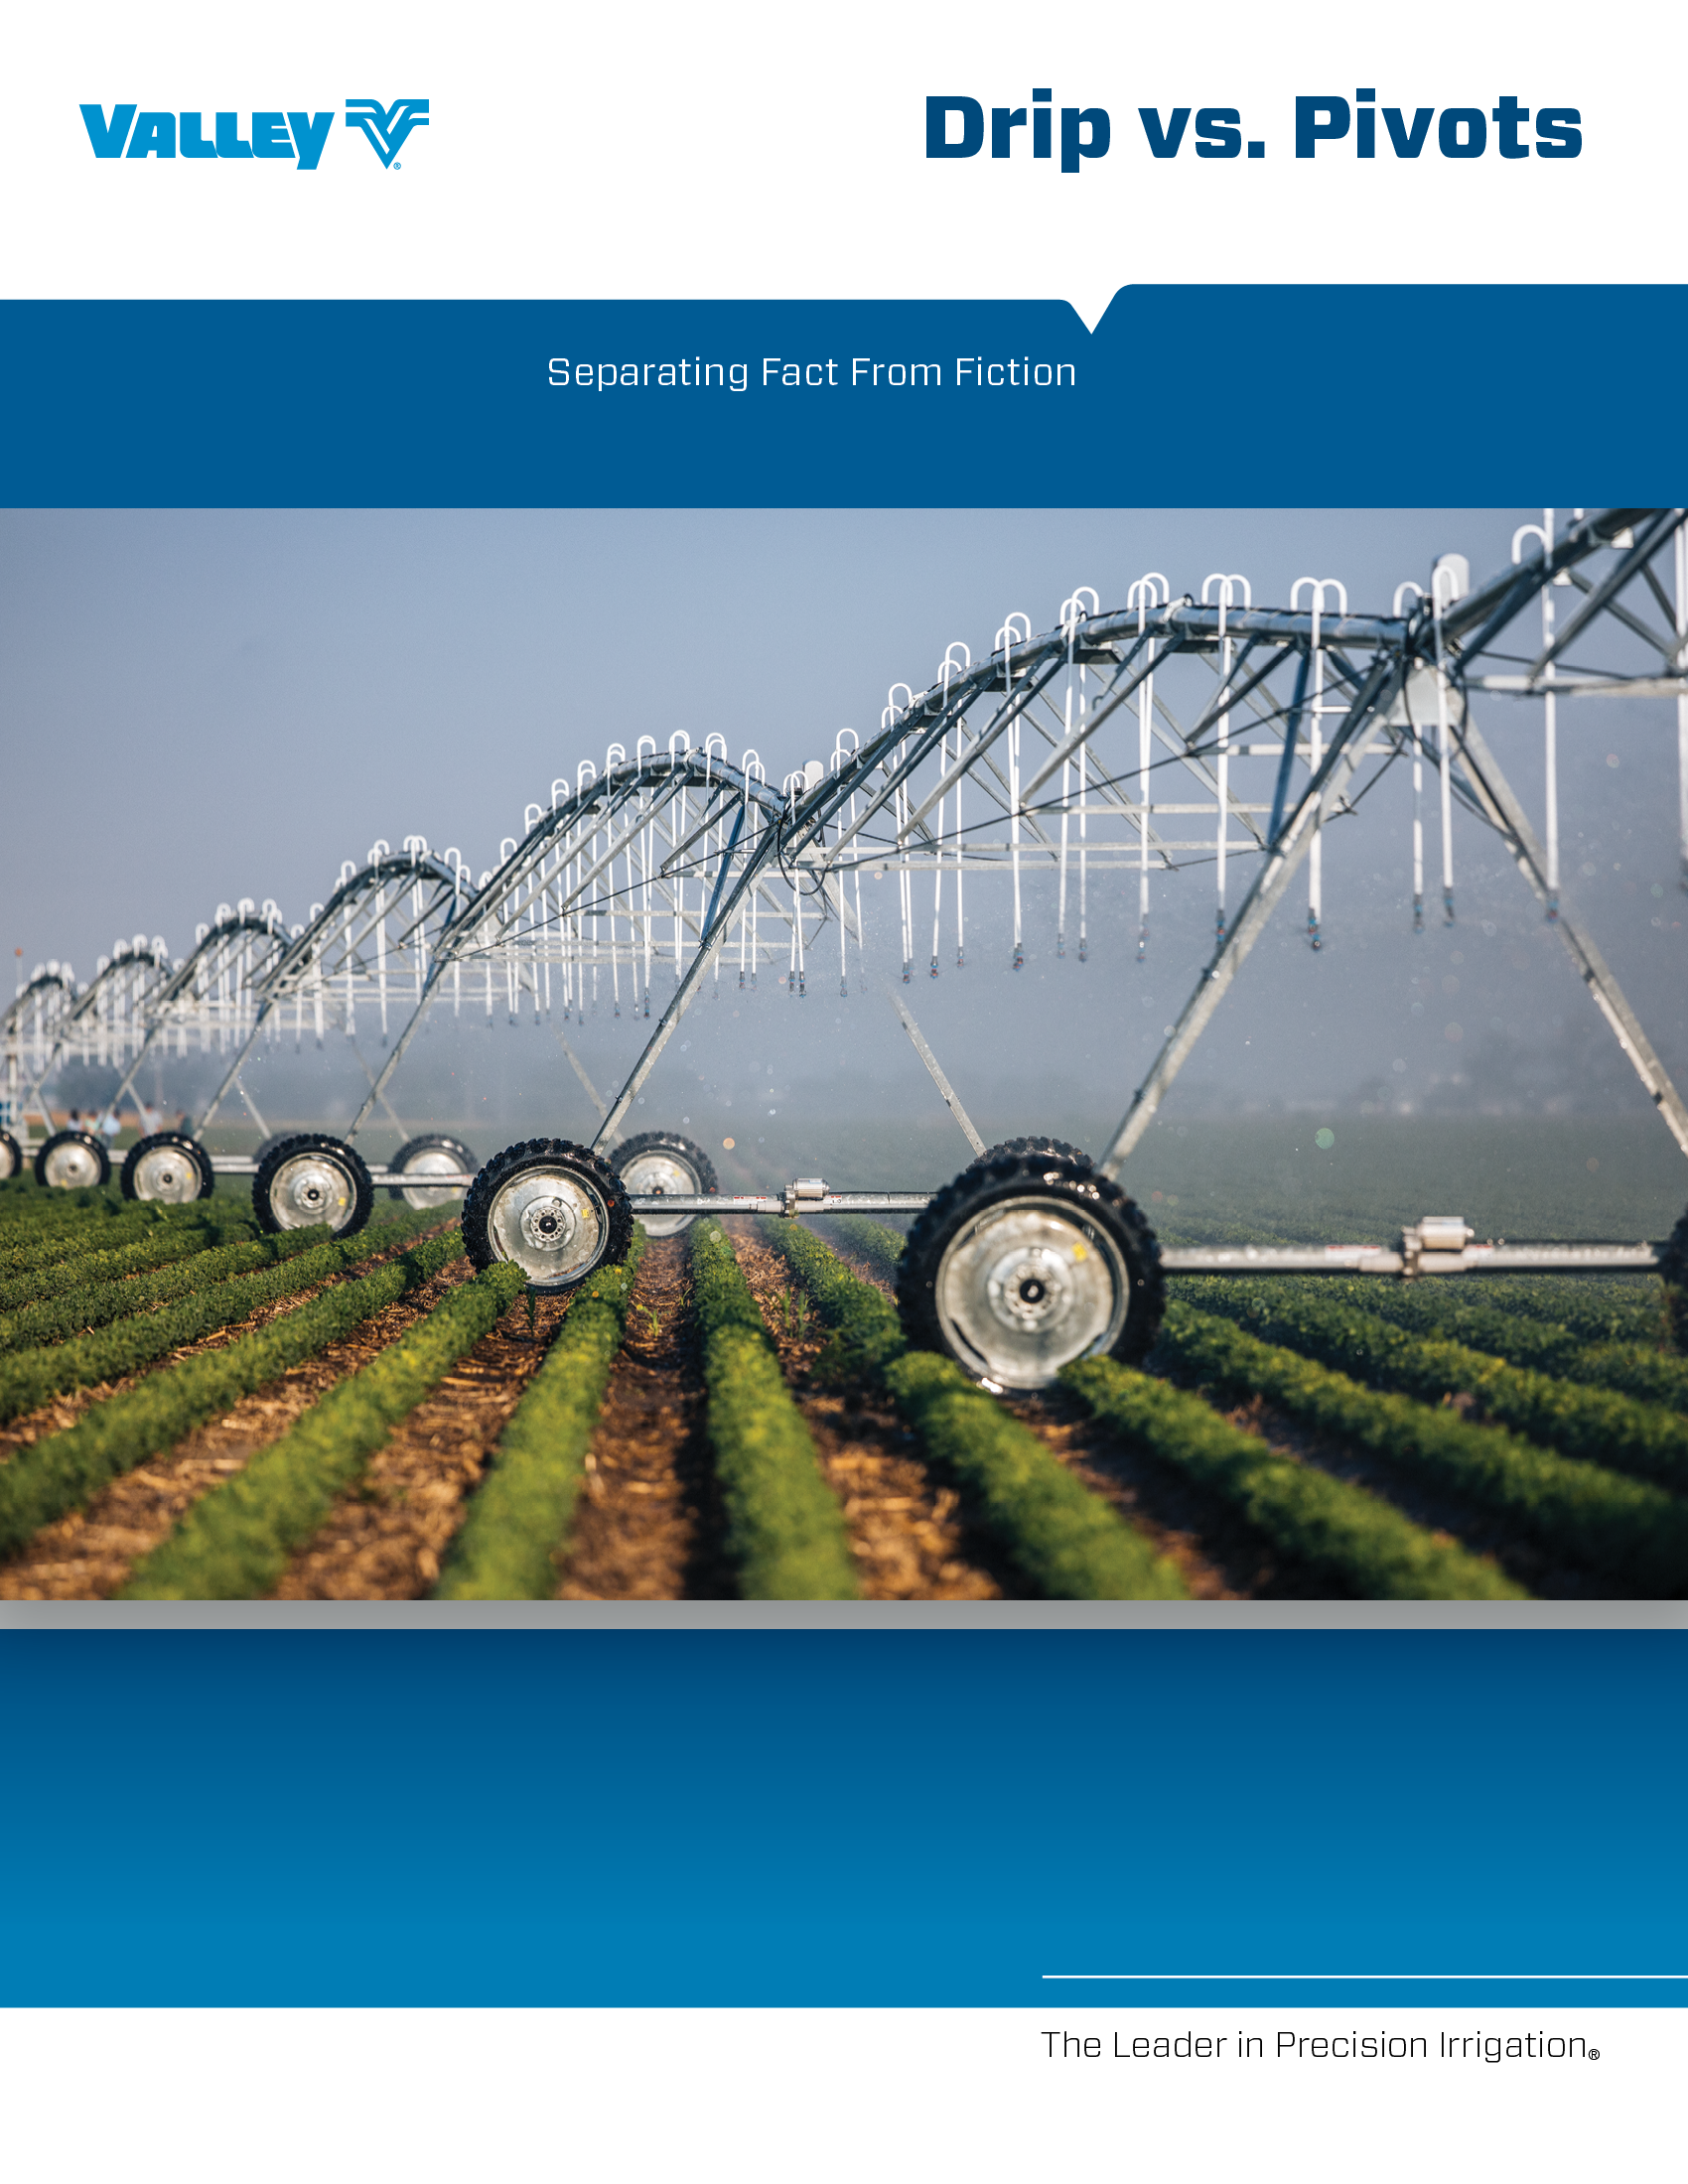 drip vs pivots brochure cover